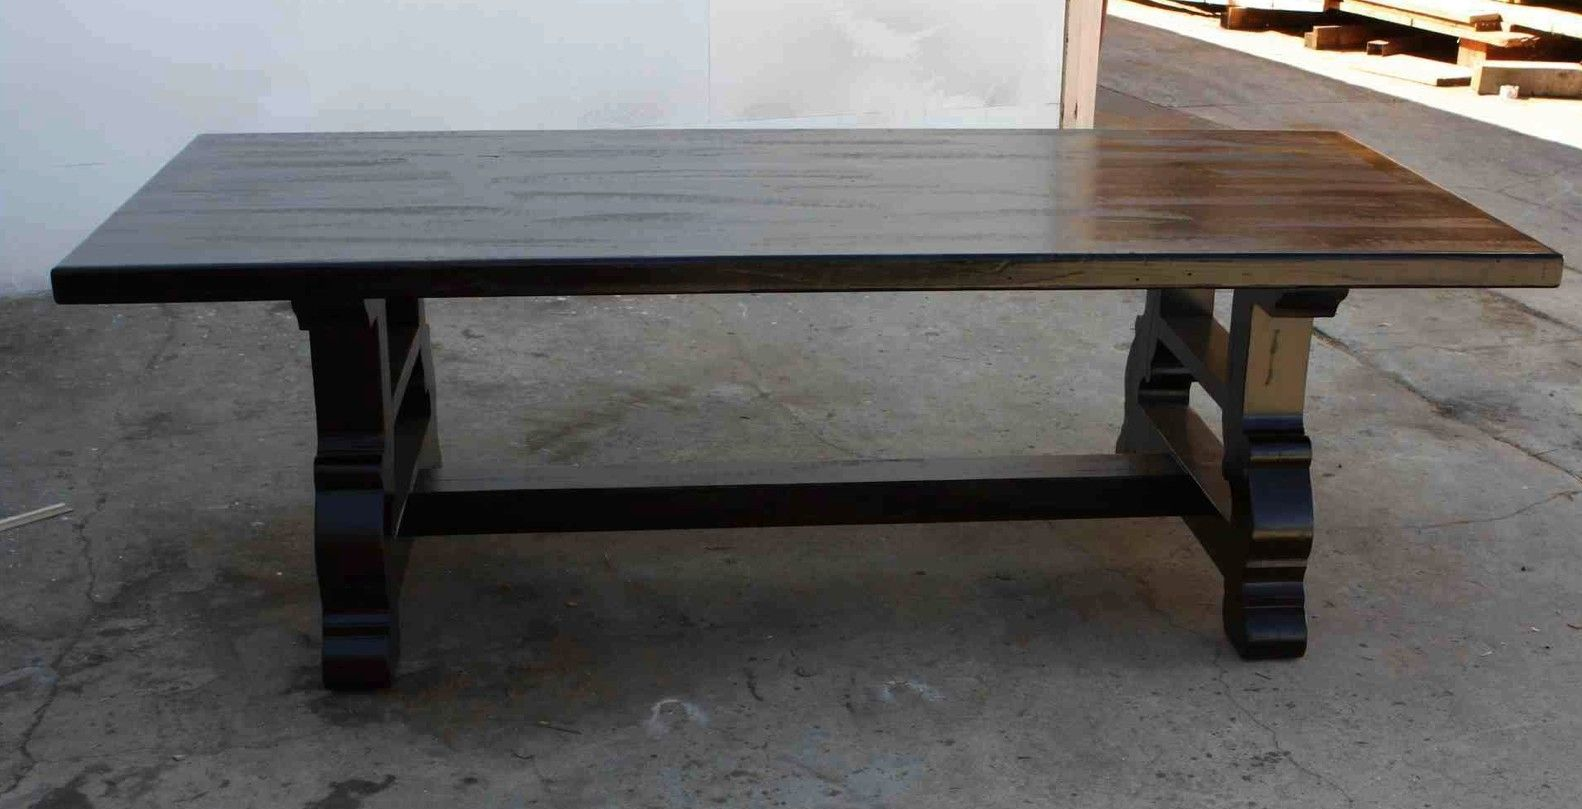 Handmade Spanish Trestle Dining Table In Reclaimed Wood by Mortise ...